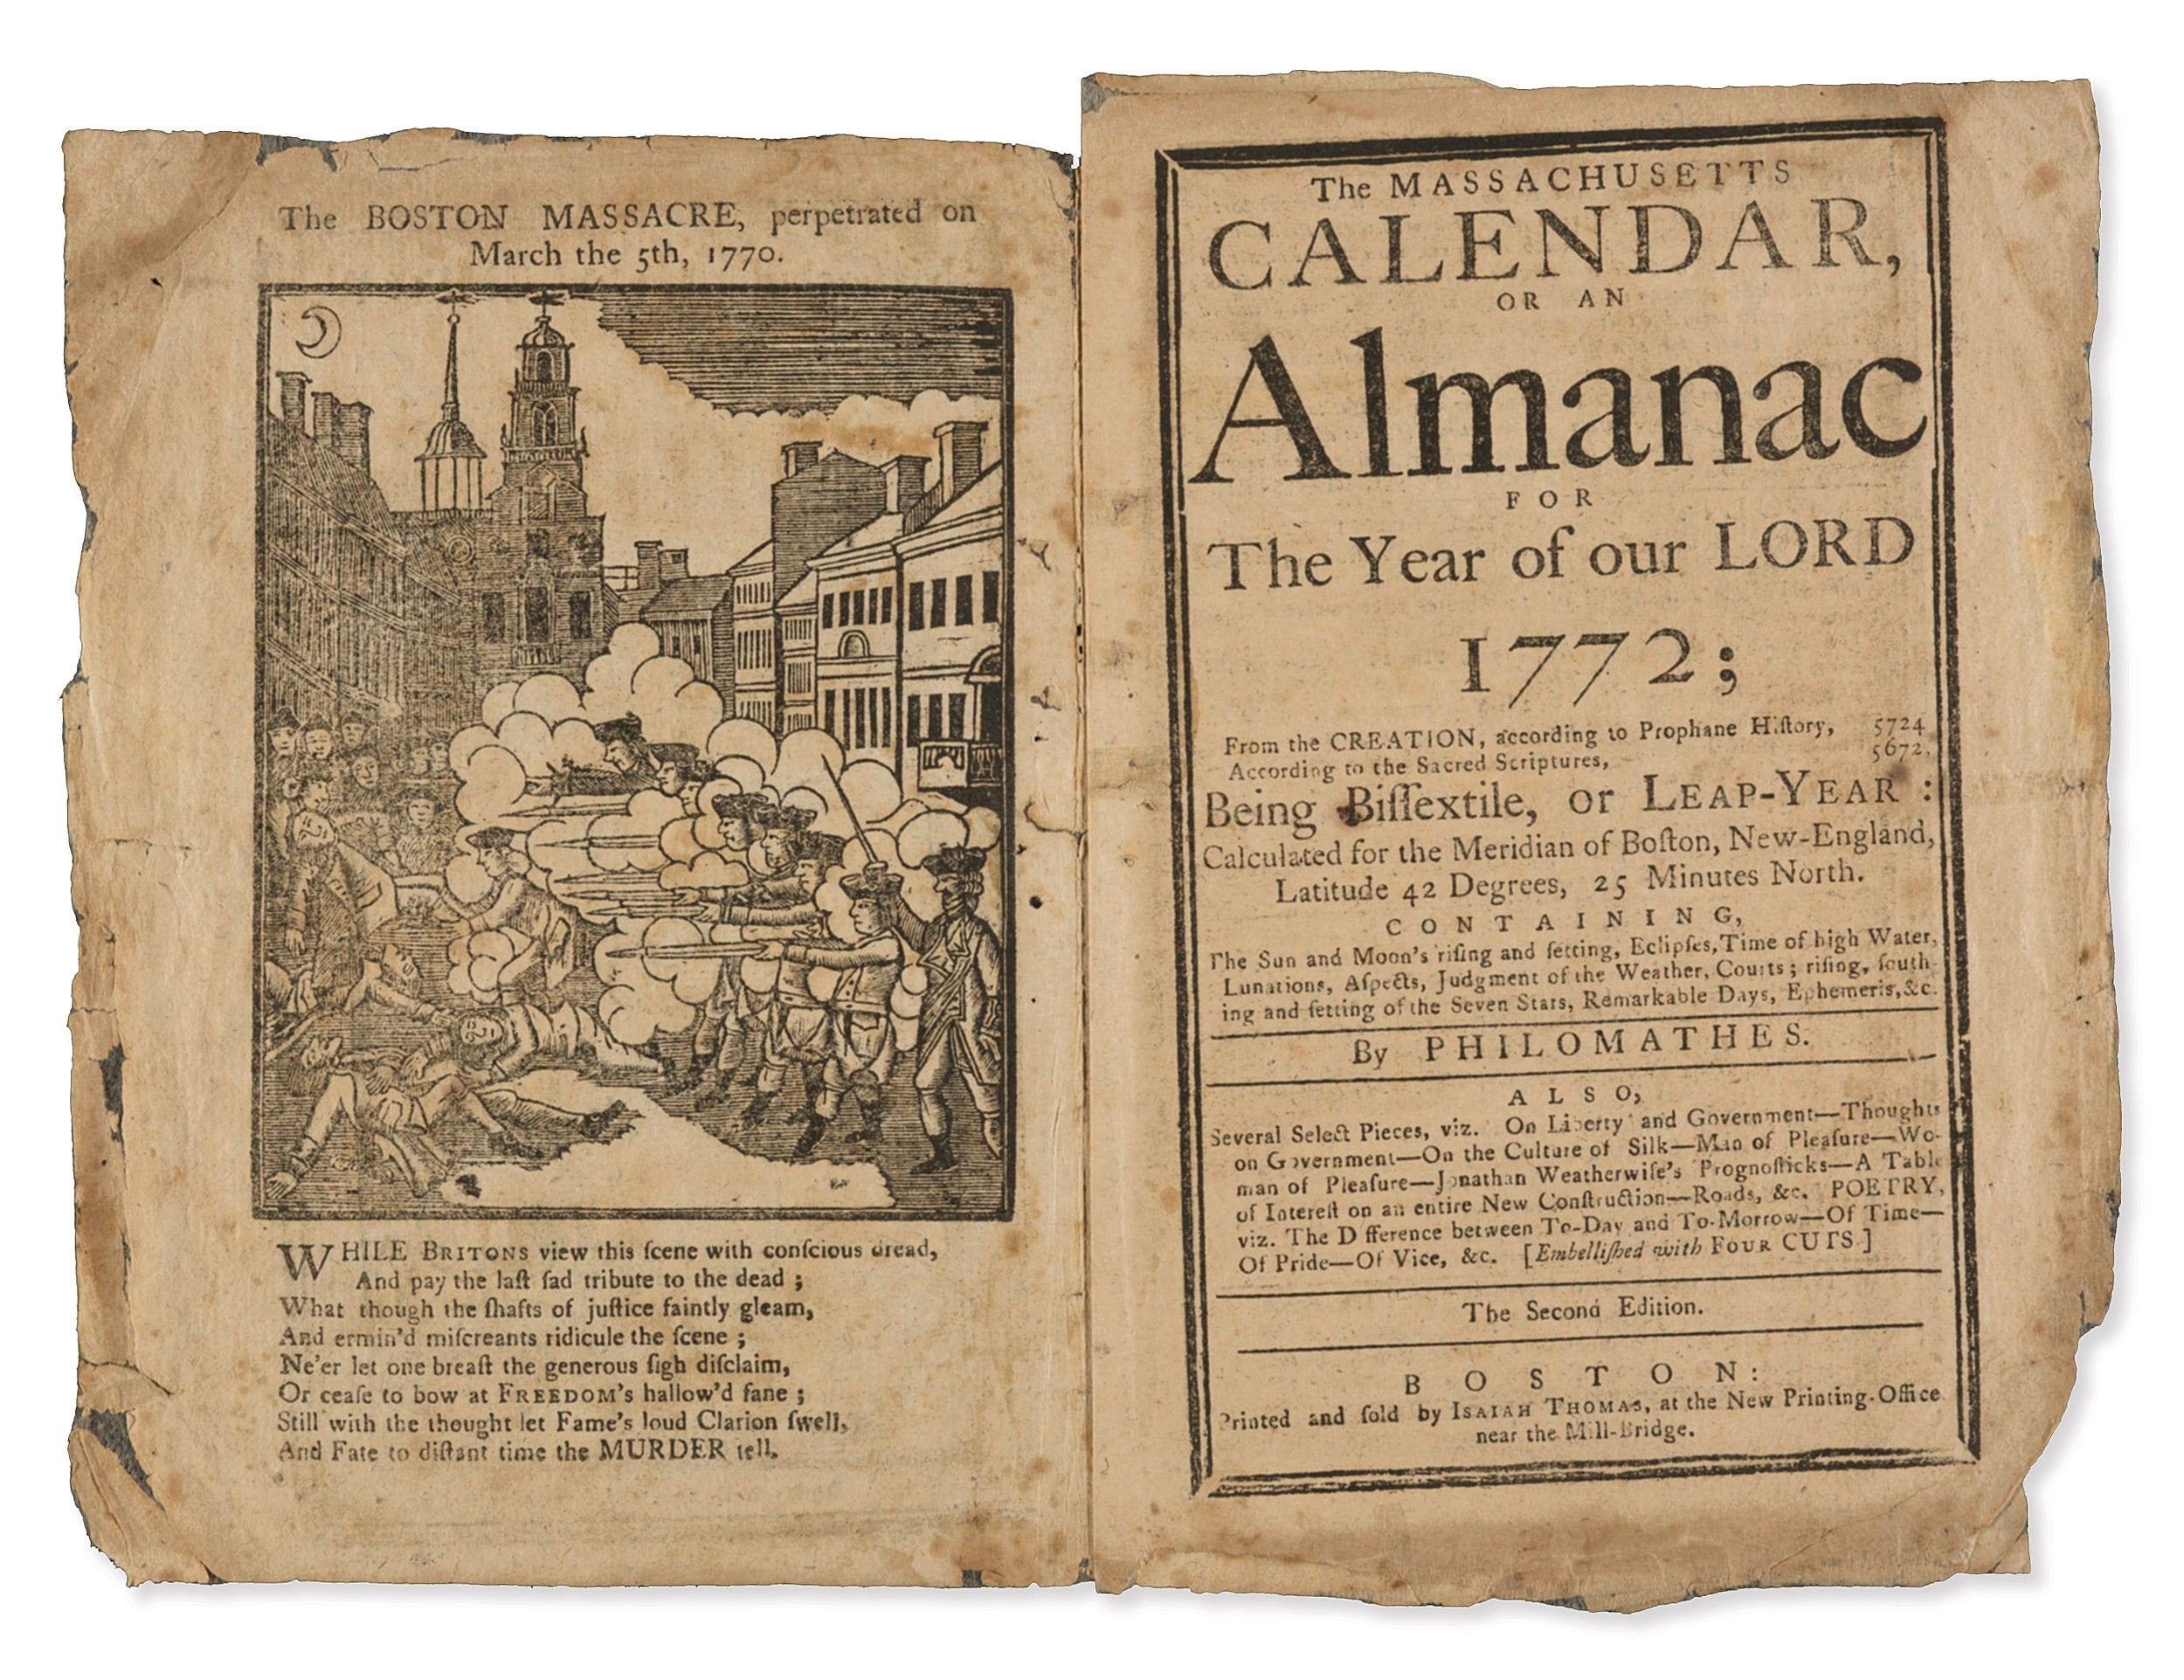 Back cover of John Winthrop's 1772 almanac shows Paul Revere's engraving of the Boston Massacre.